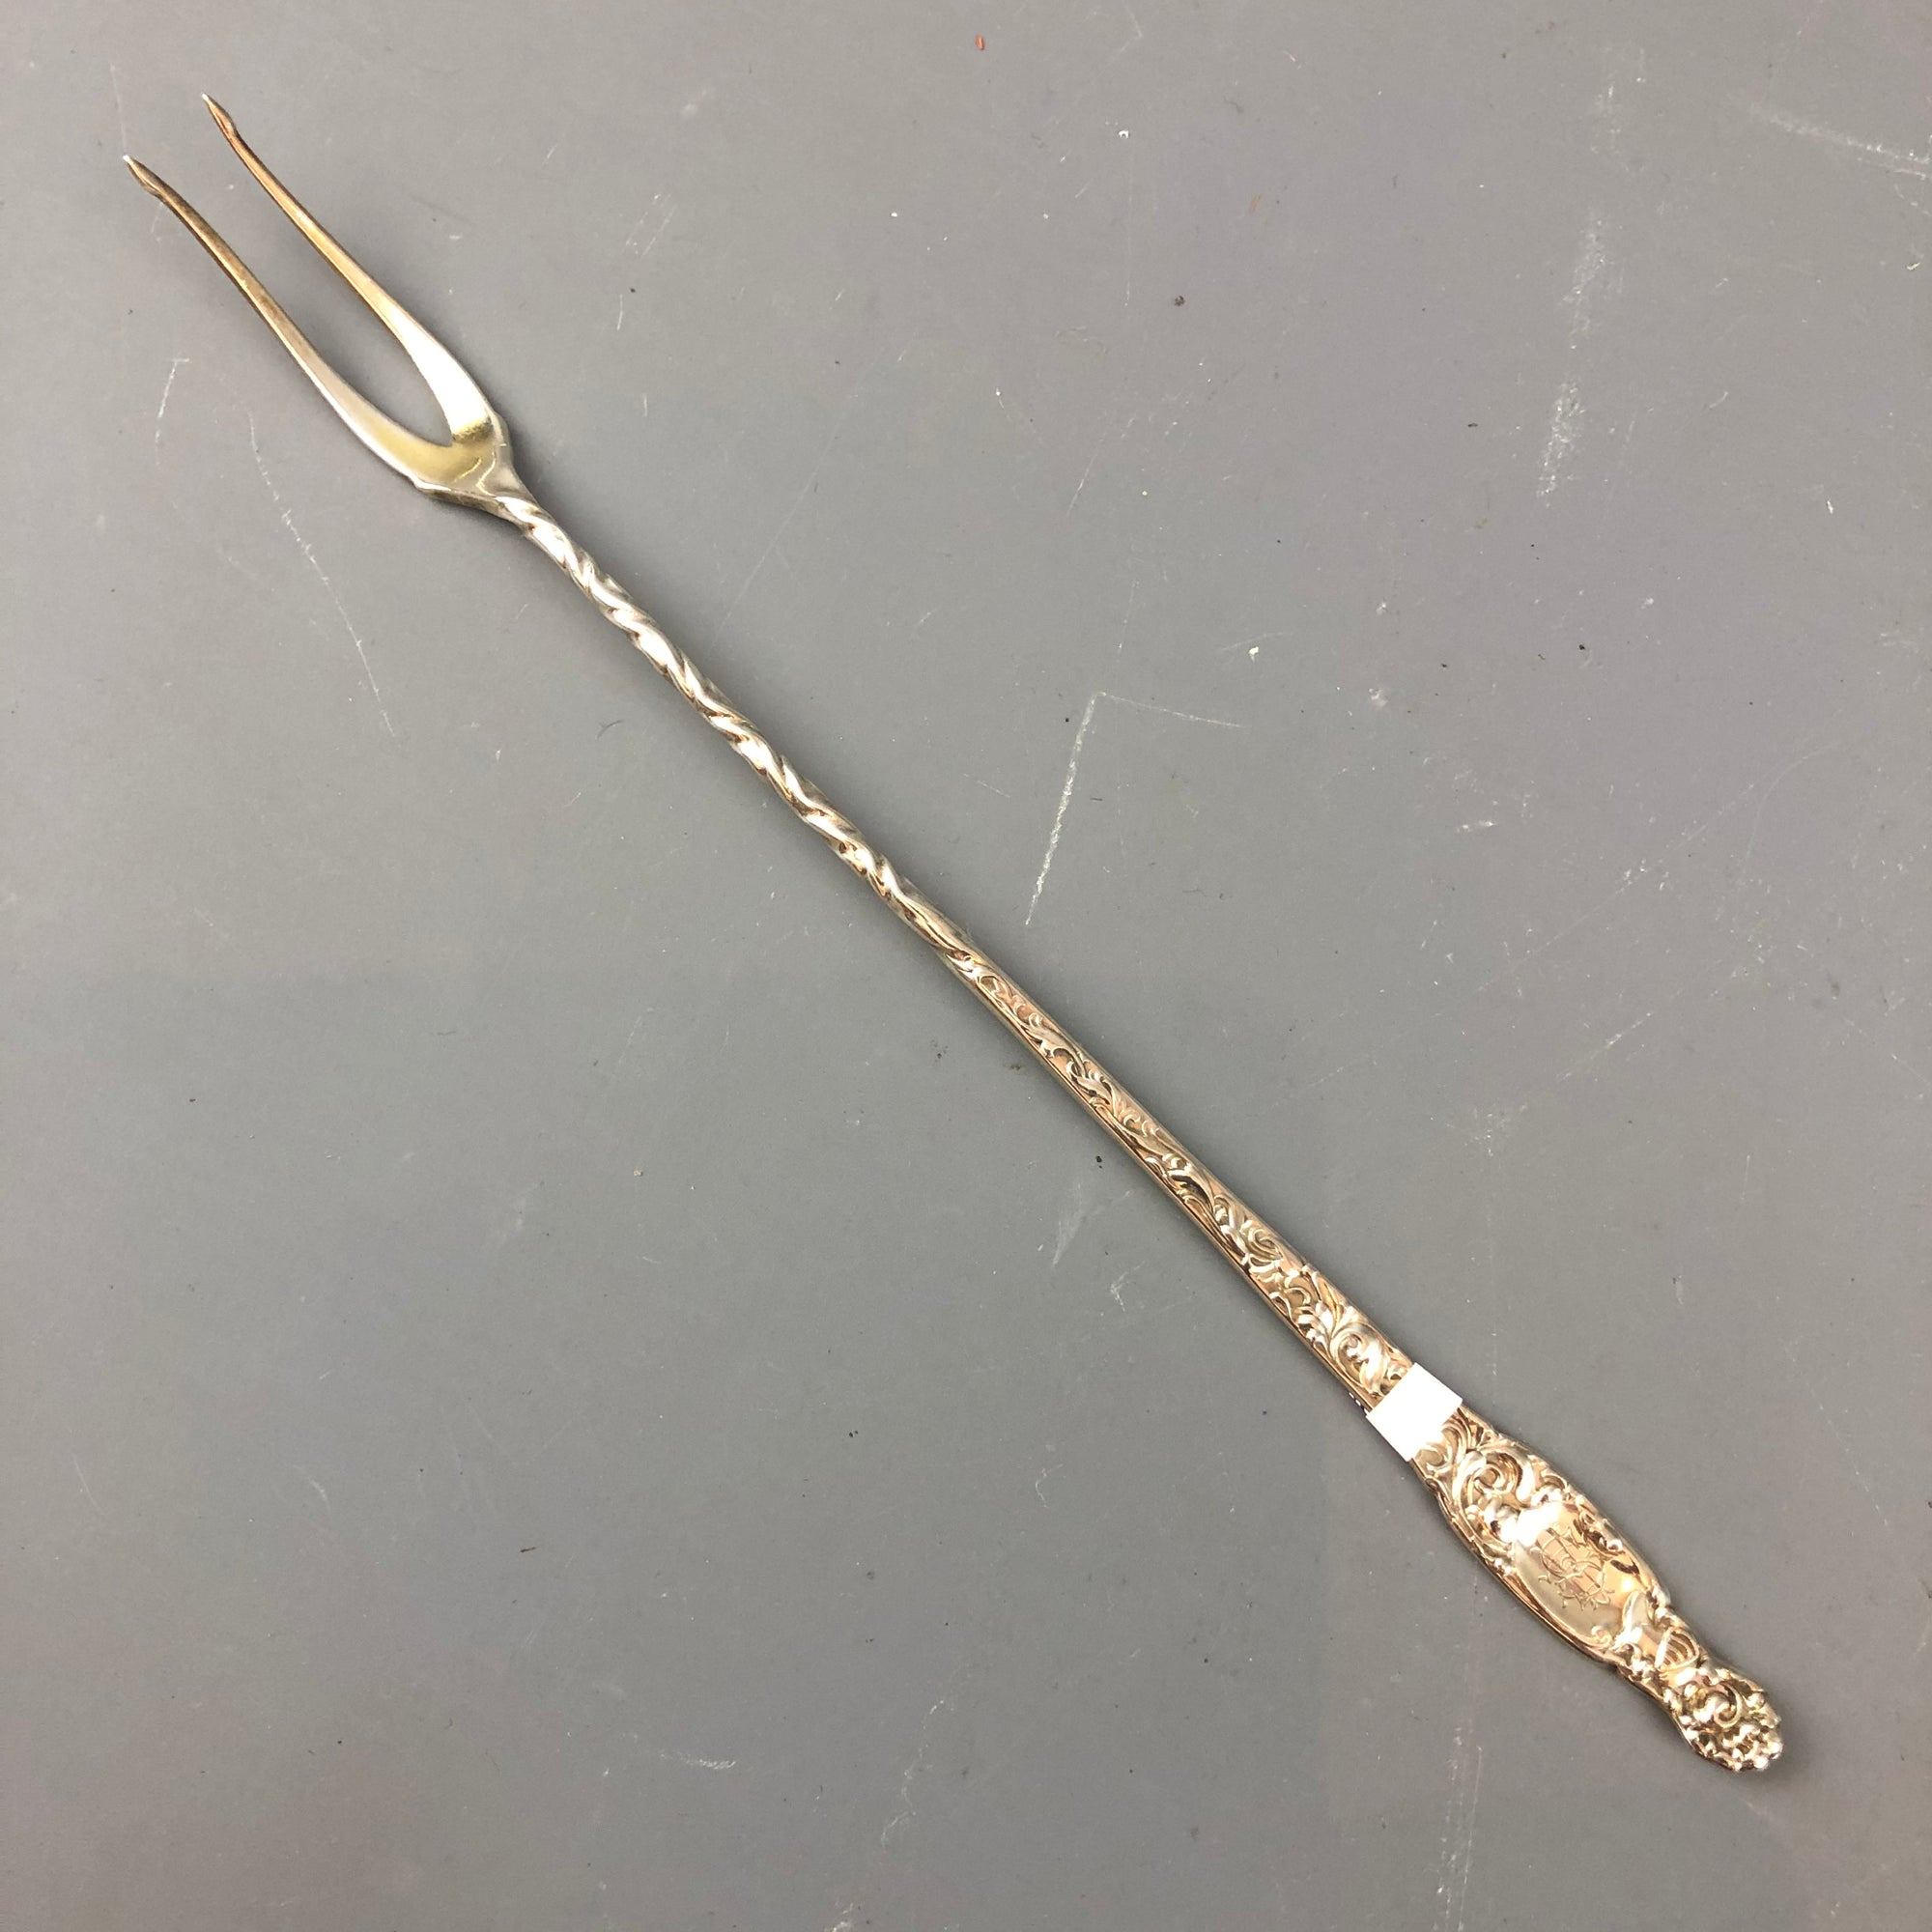 Sterling-Silver-Pickle-Fork-Art-Deco-Vintage-c1930